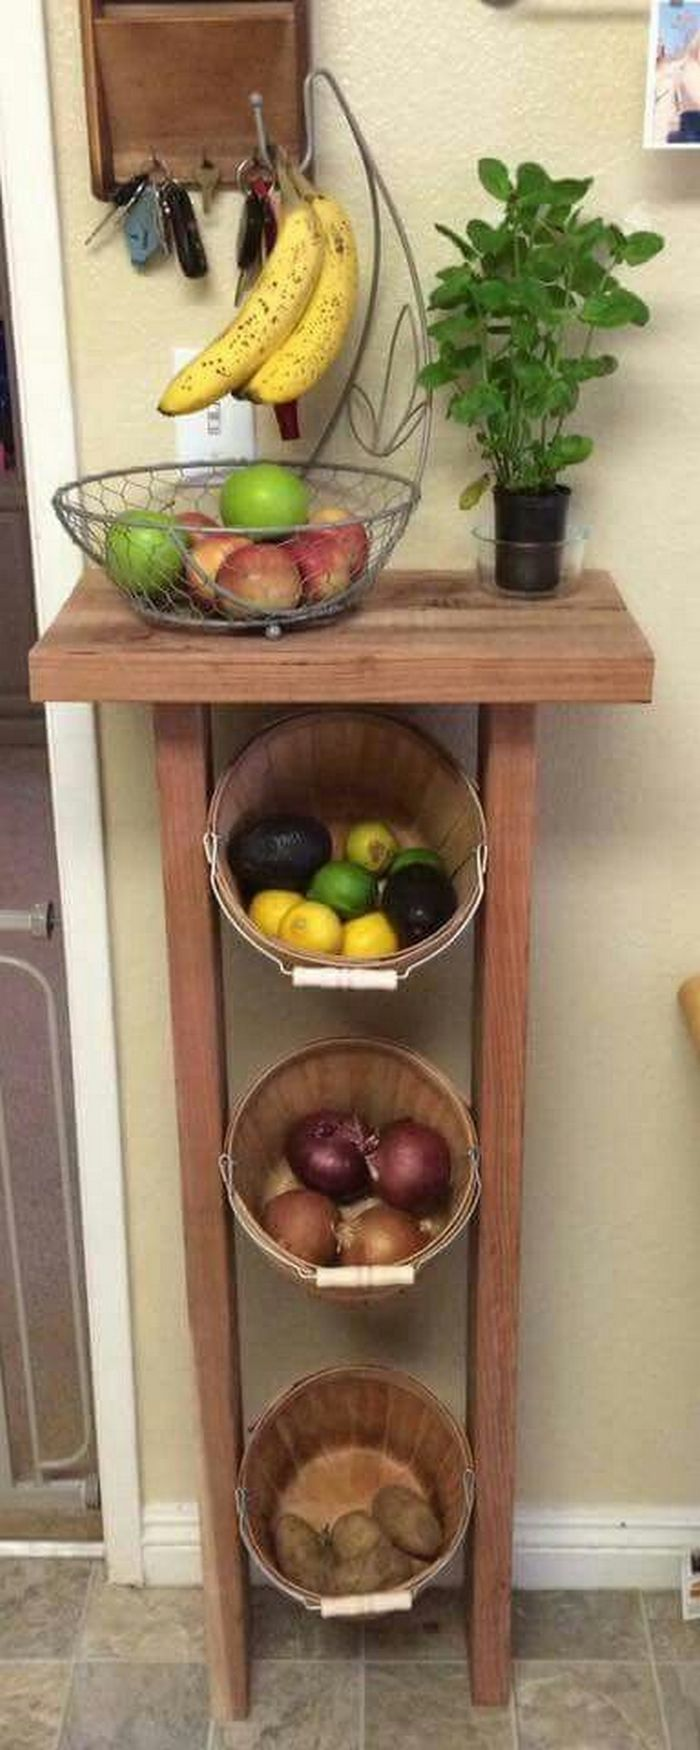 Kitchen Storage Diy Best 25 Vegetable Storage Ideas Only On Pinterest  Onion Storage